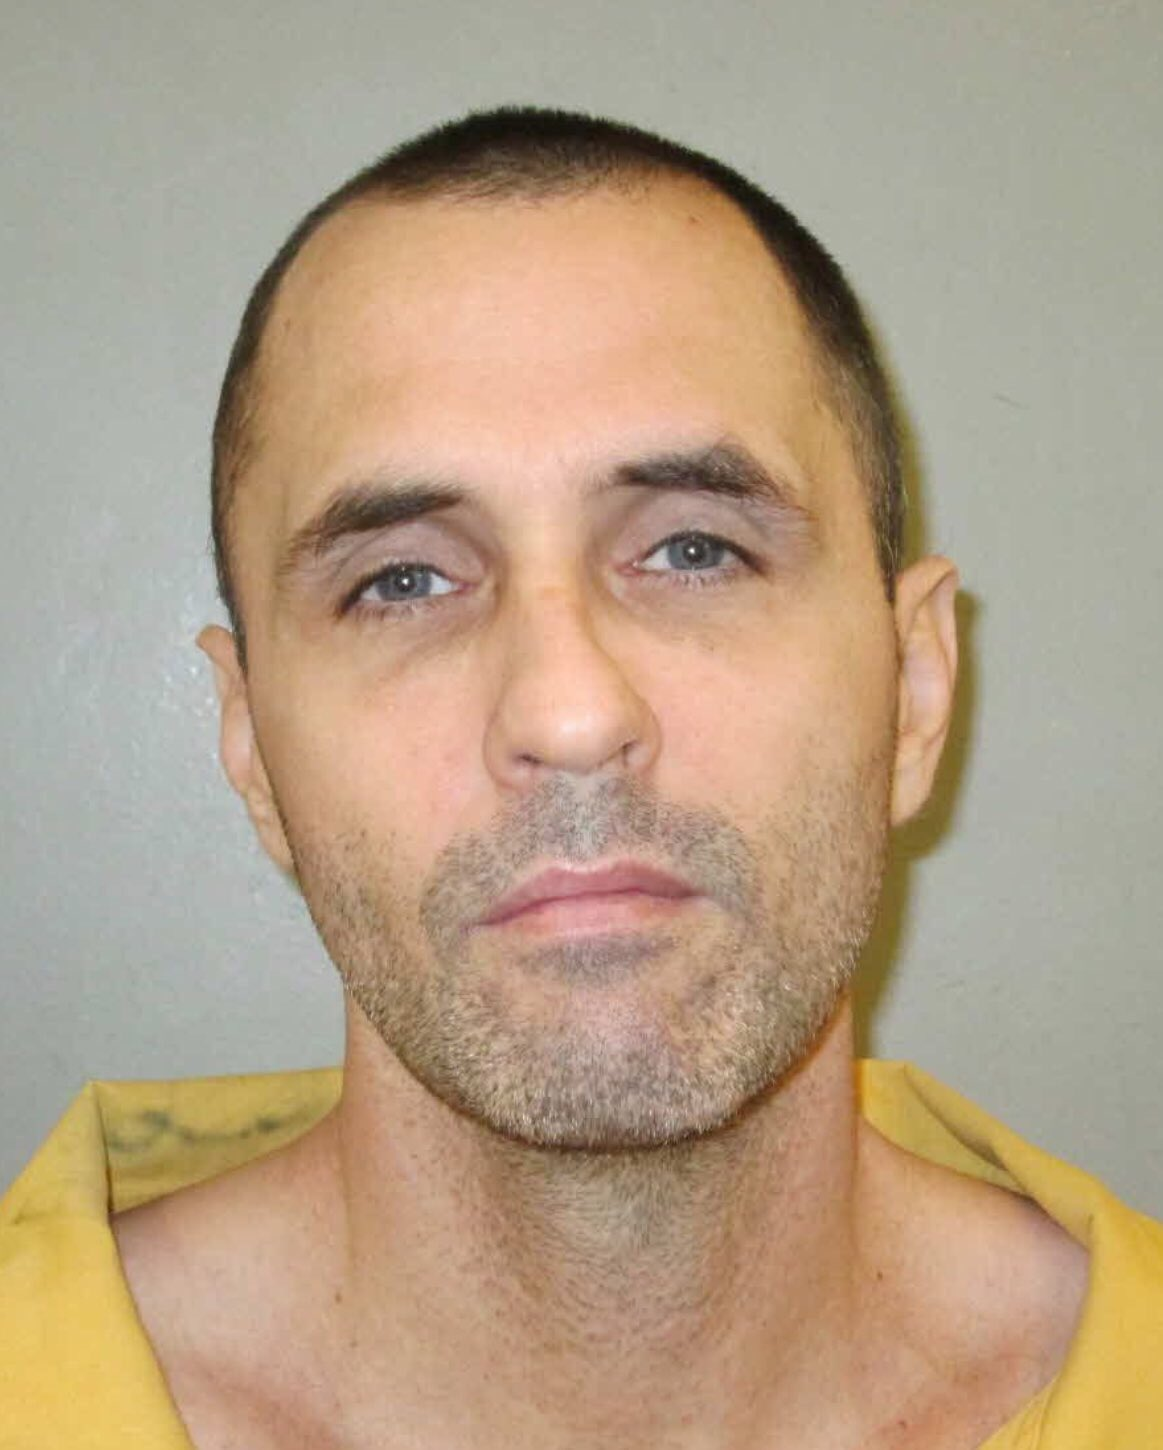 SCDC: Escaped inmate apprehended in Texas